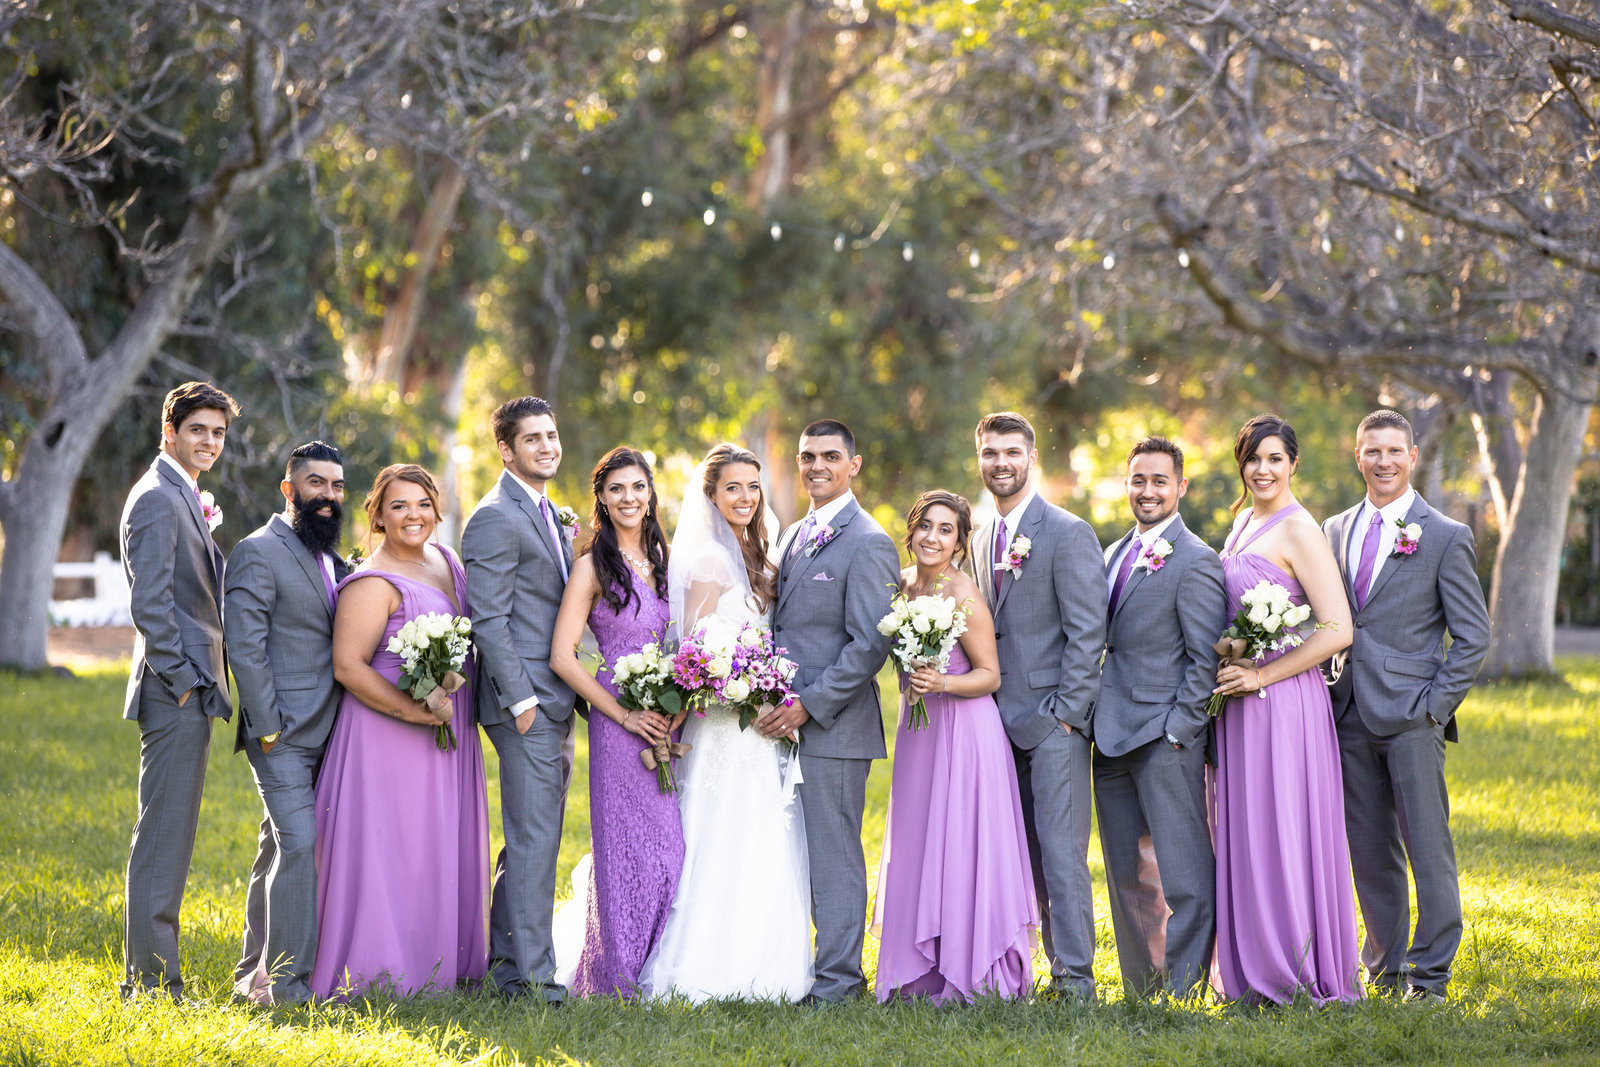 bridal party photo at walnut grove wedding venue in moorpark california